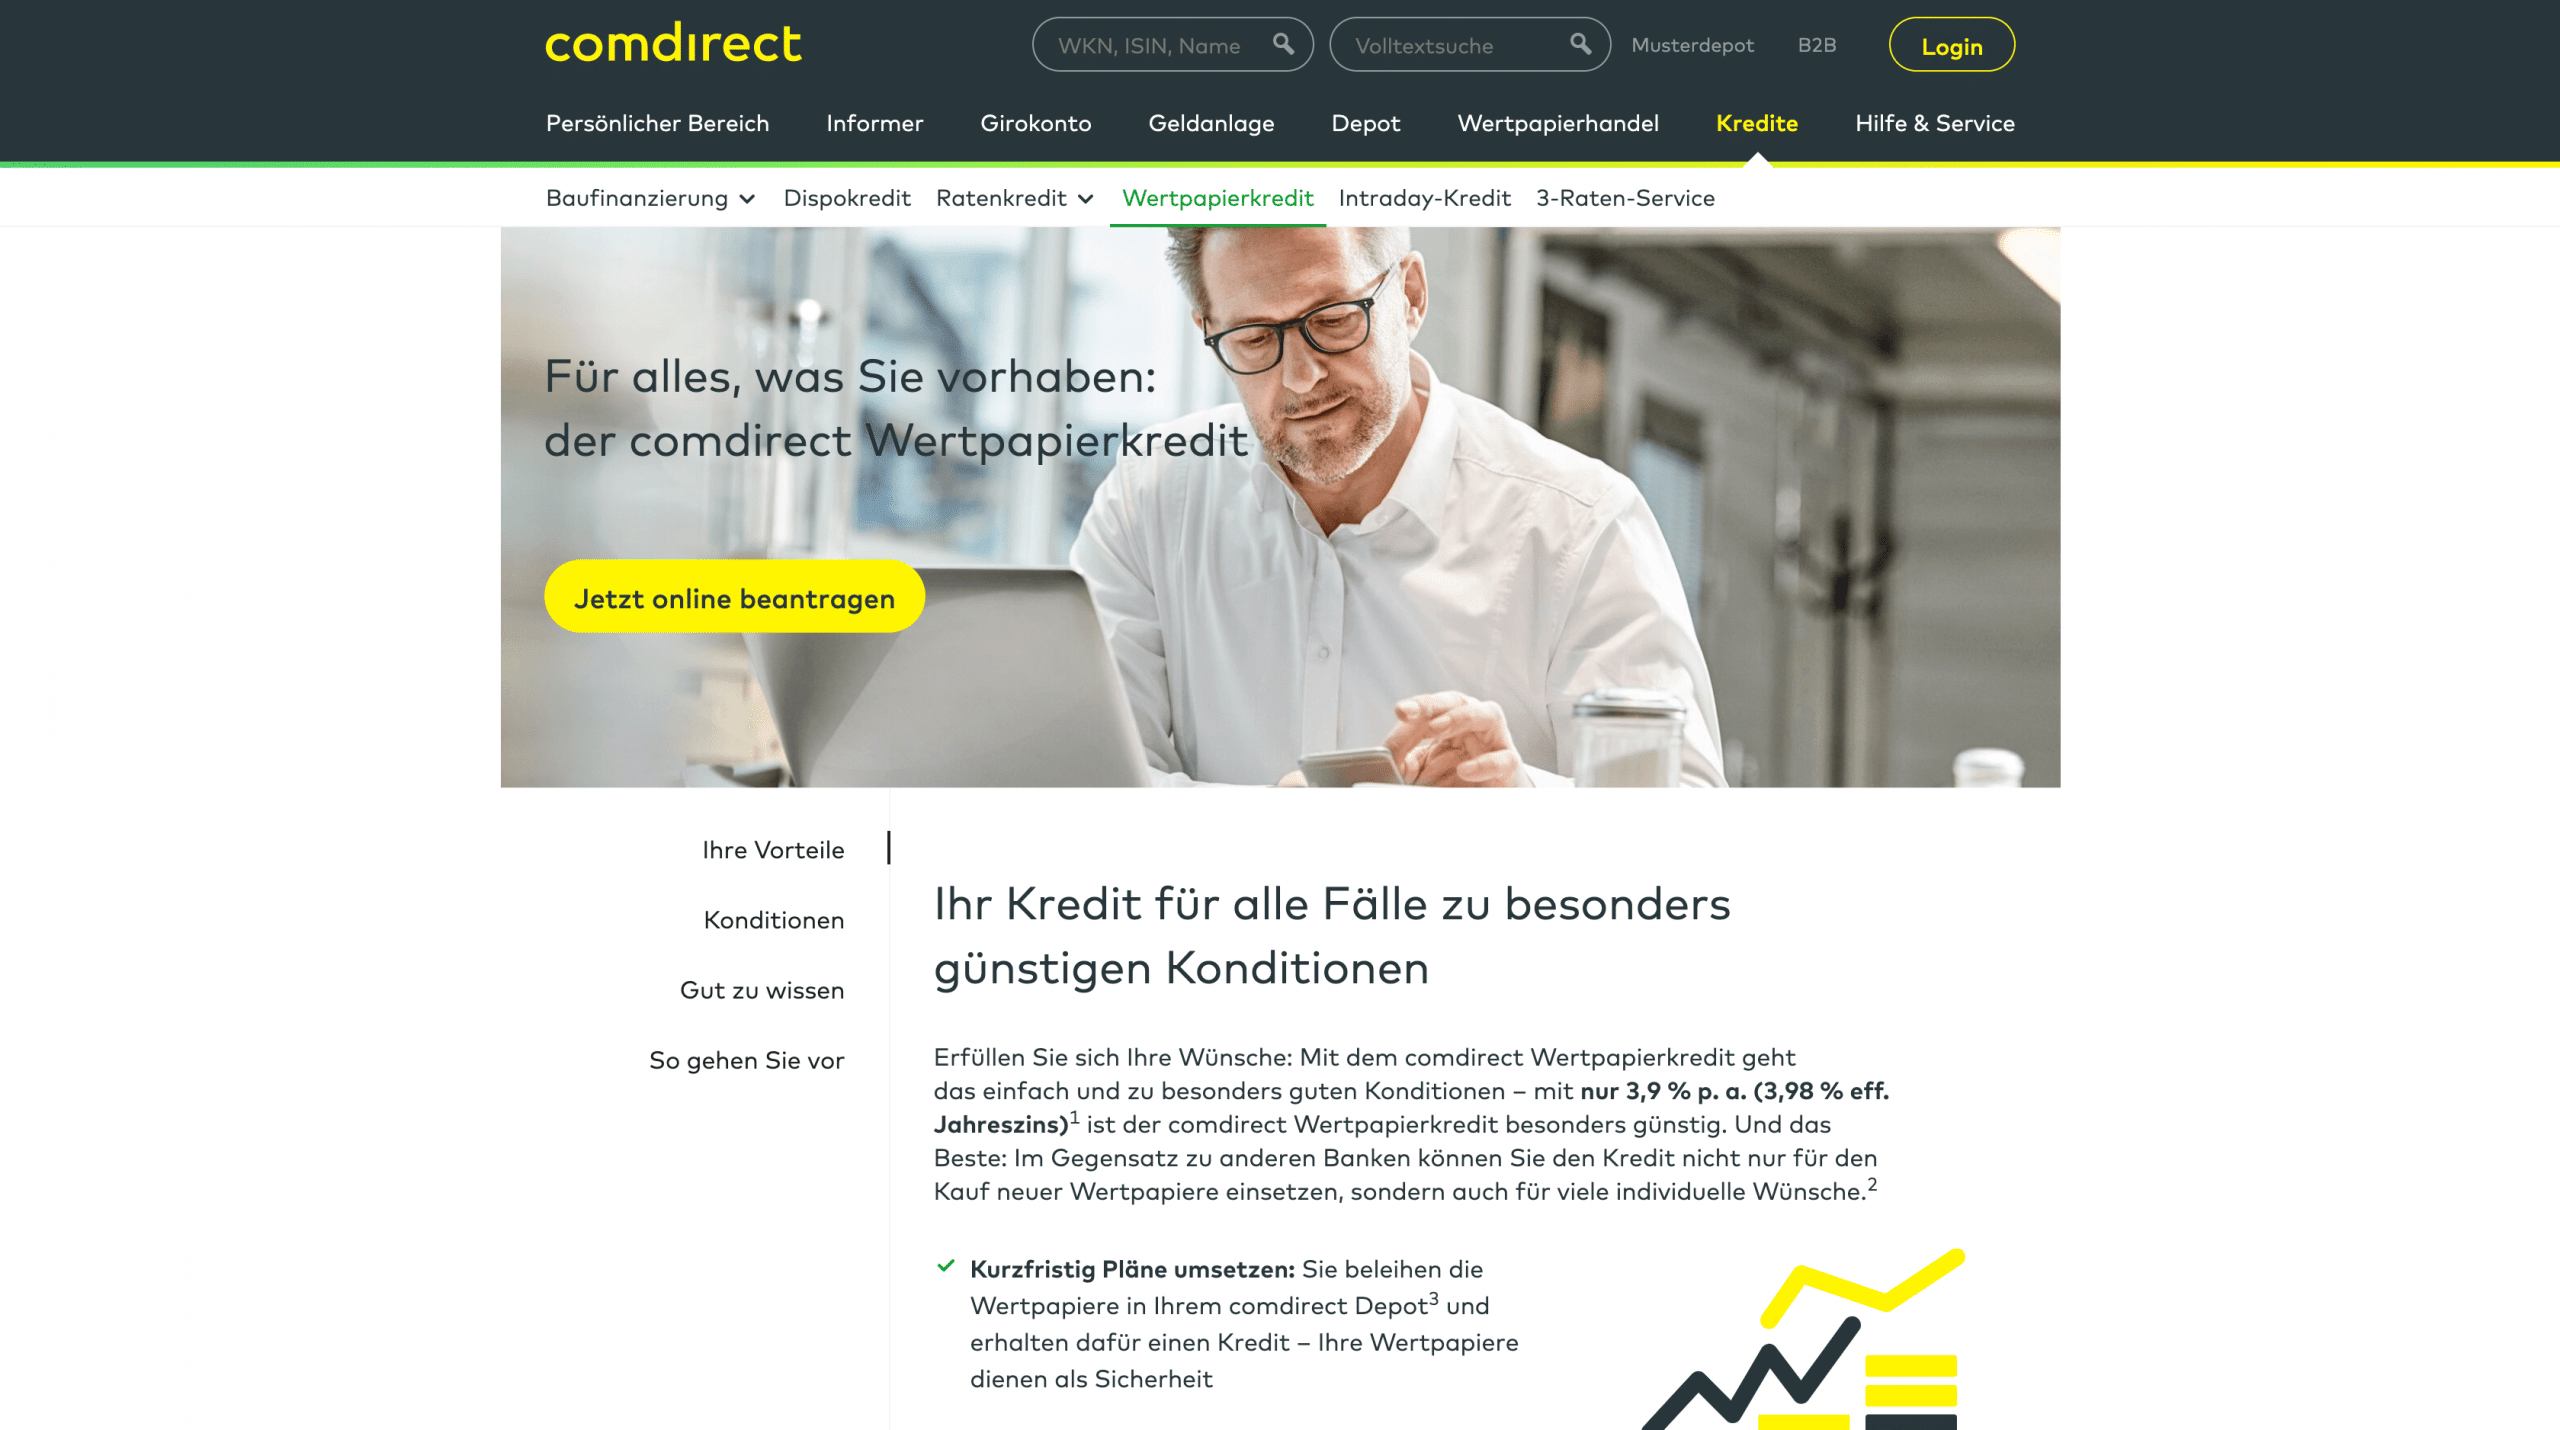 Comdirect Wertpapierkredit